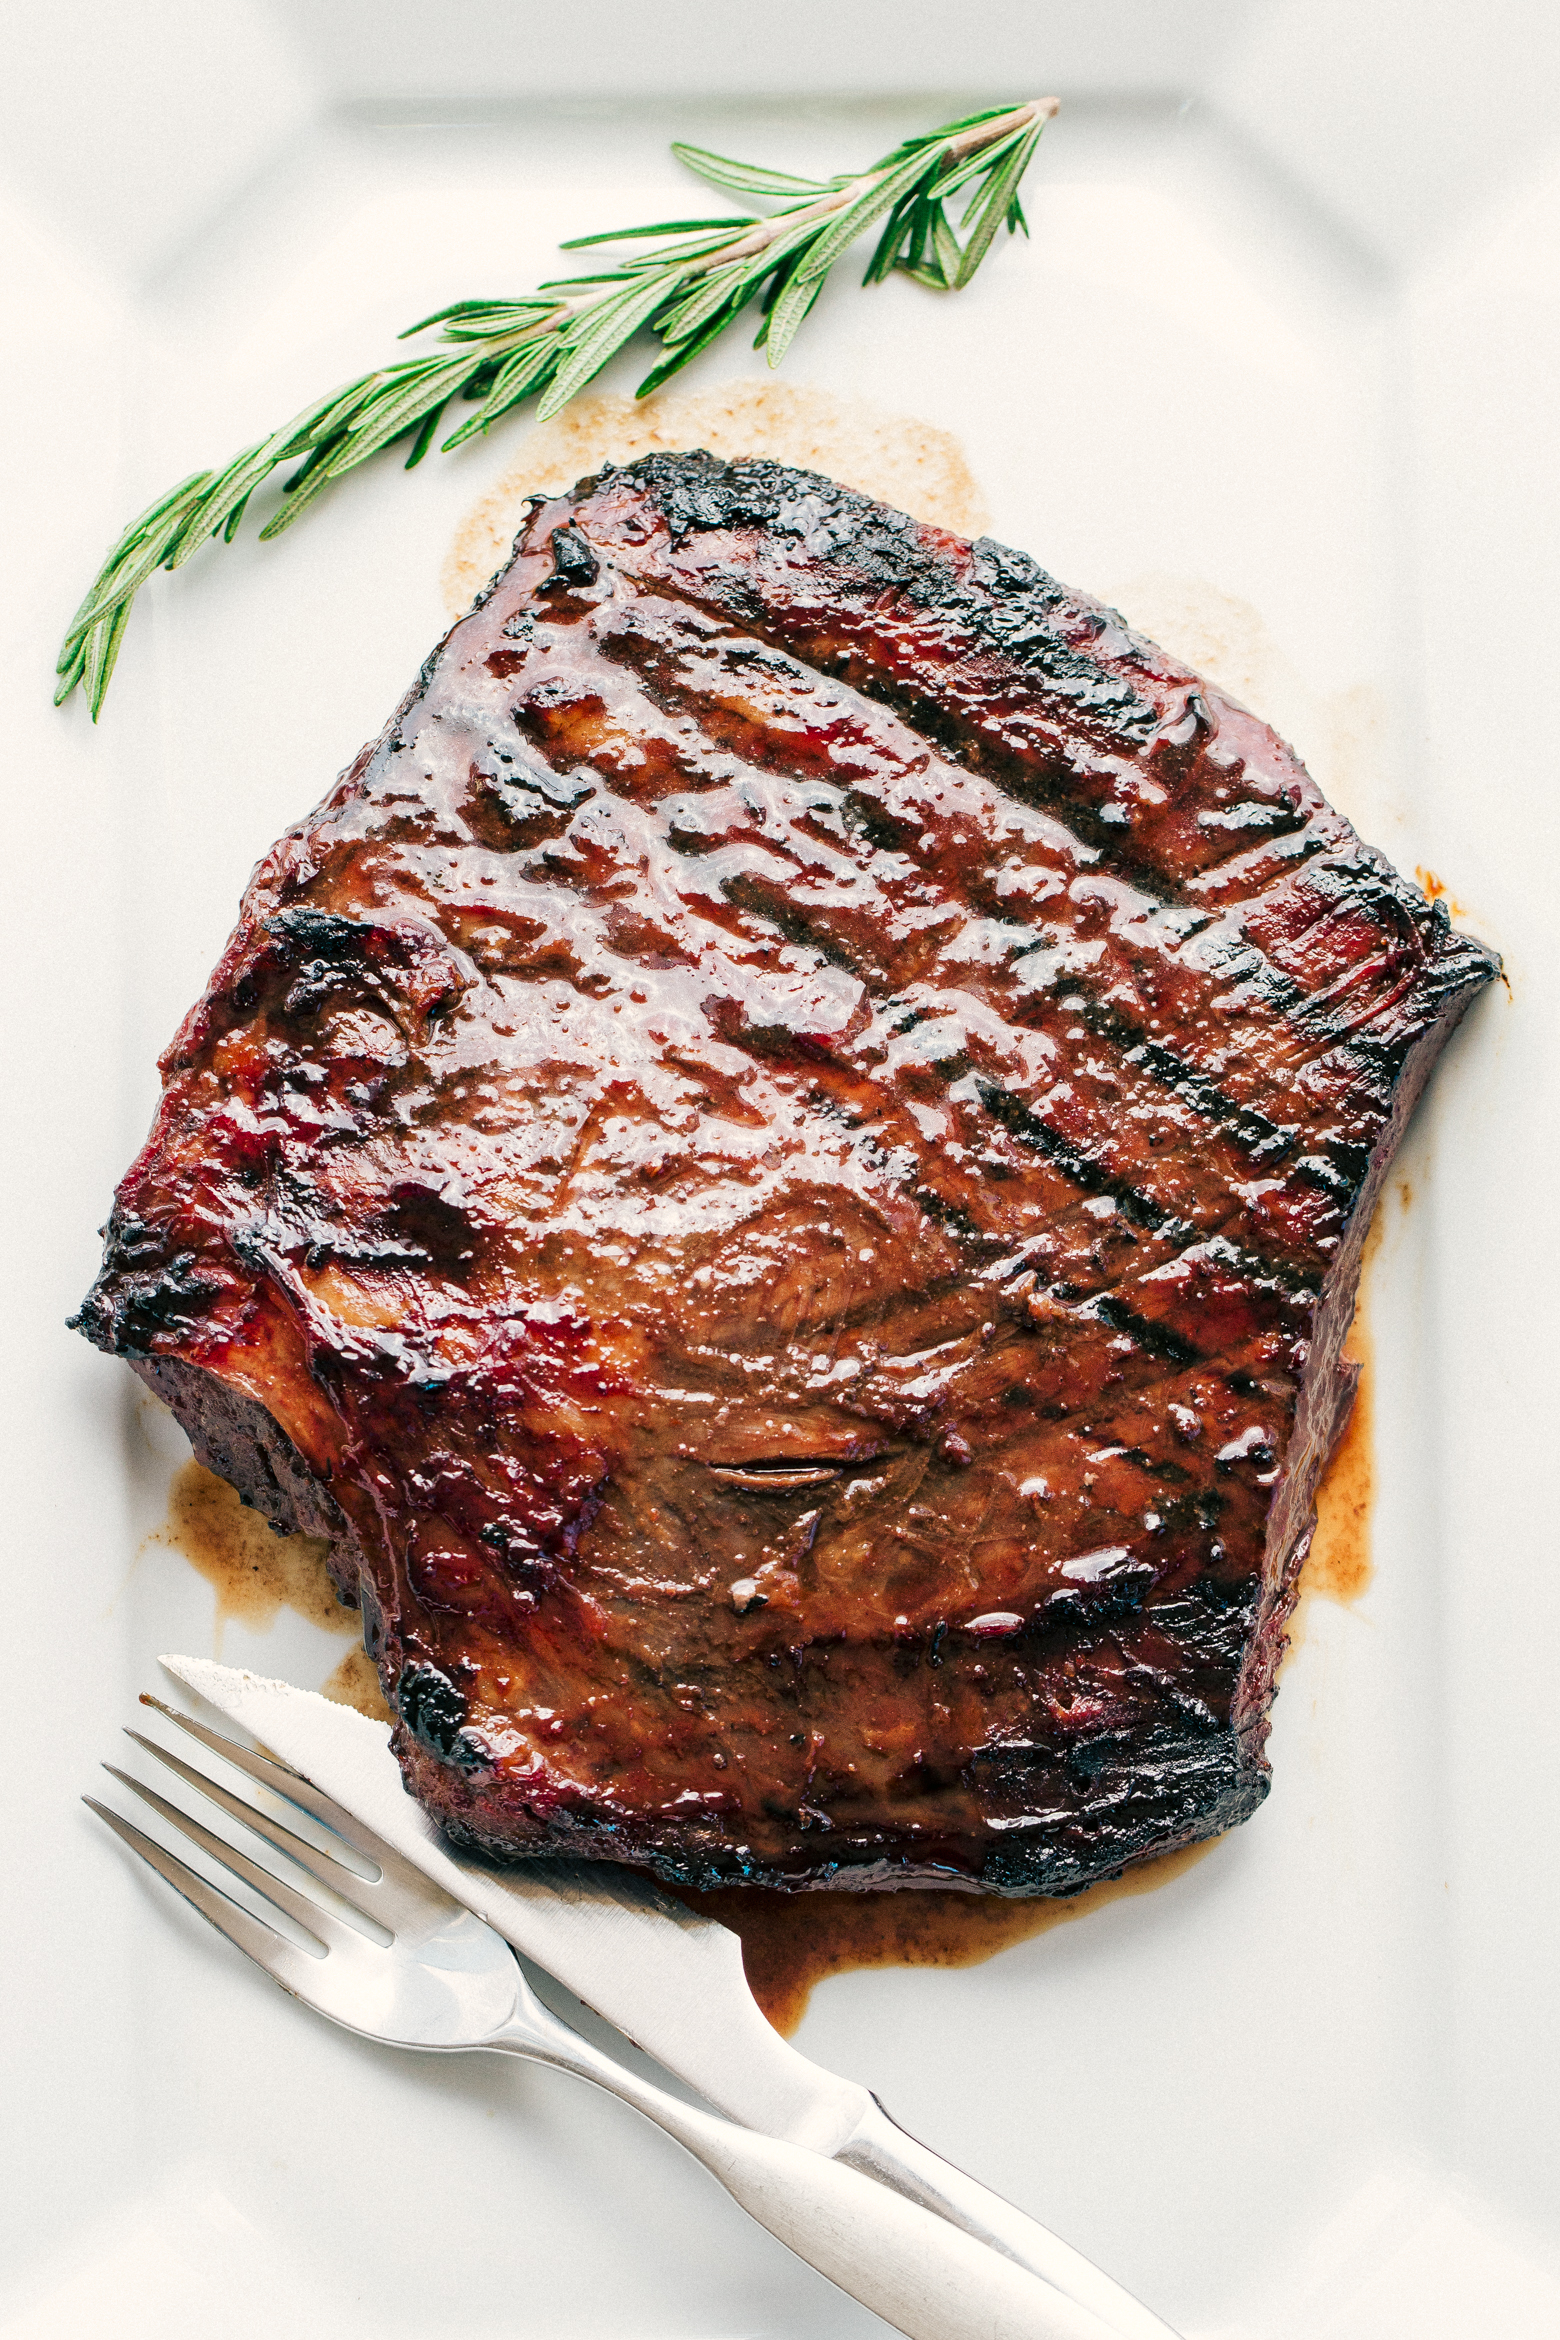 Flank Steak marinated and BBQd and placed on a white serving platter by The Food Cafe